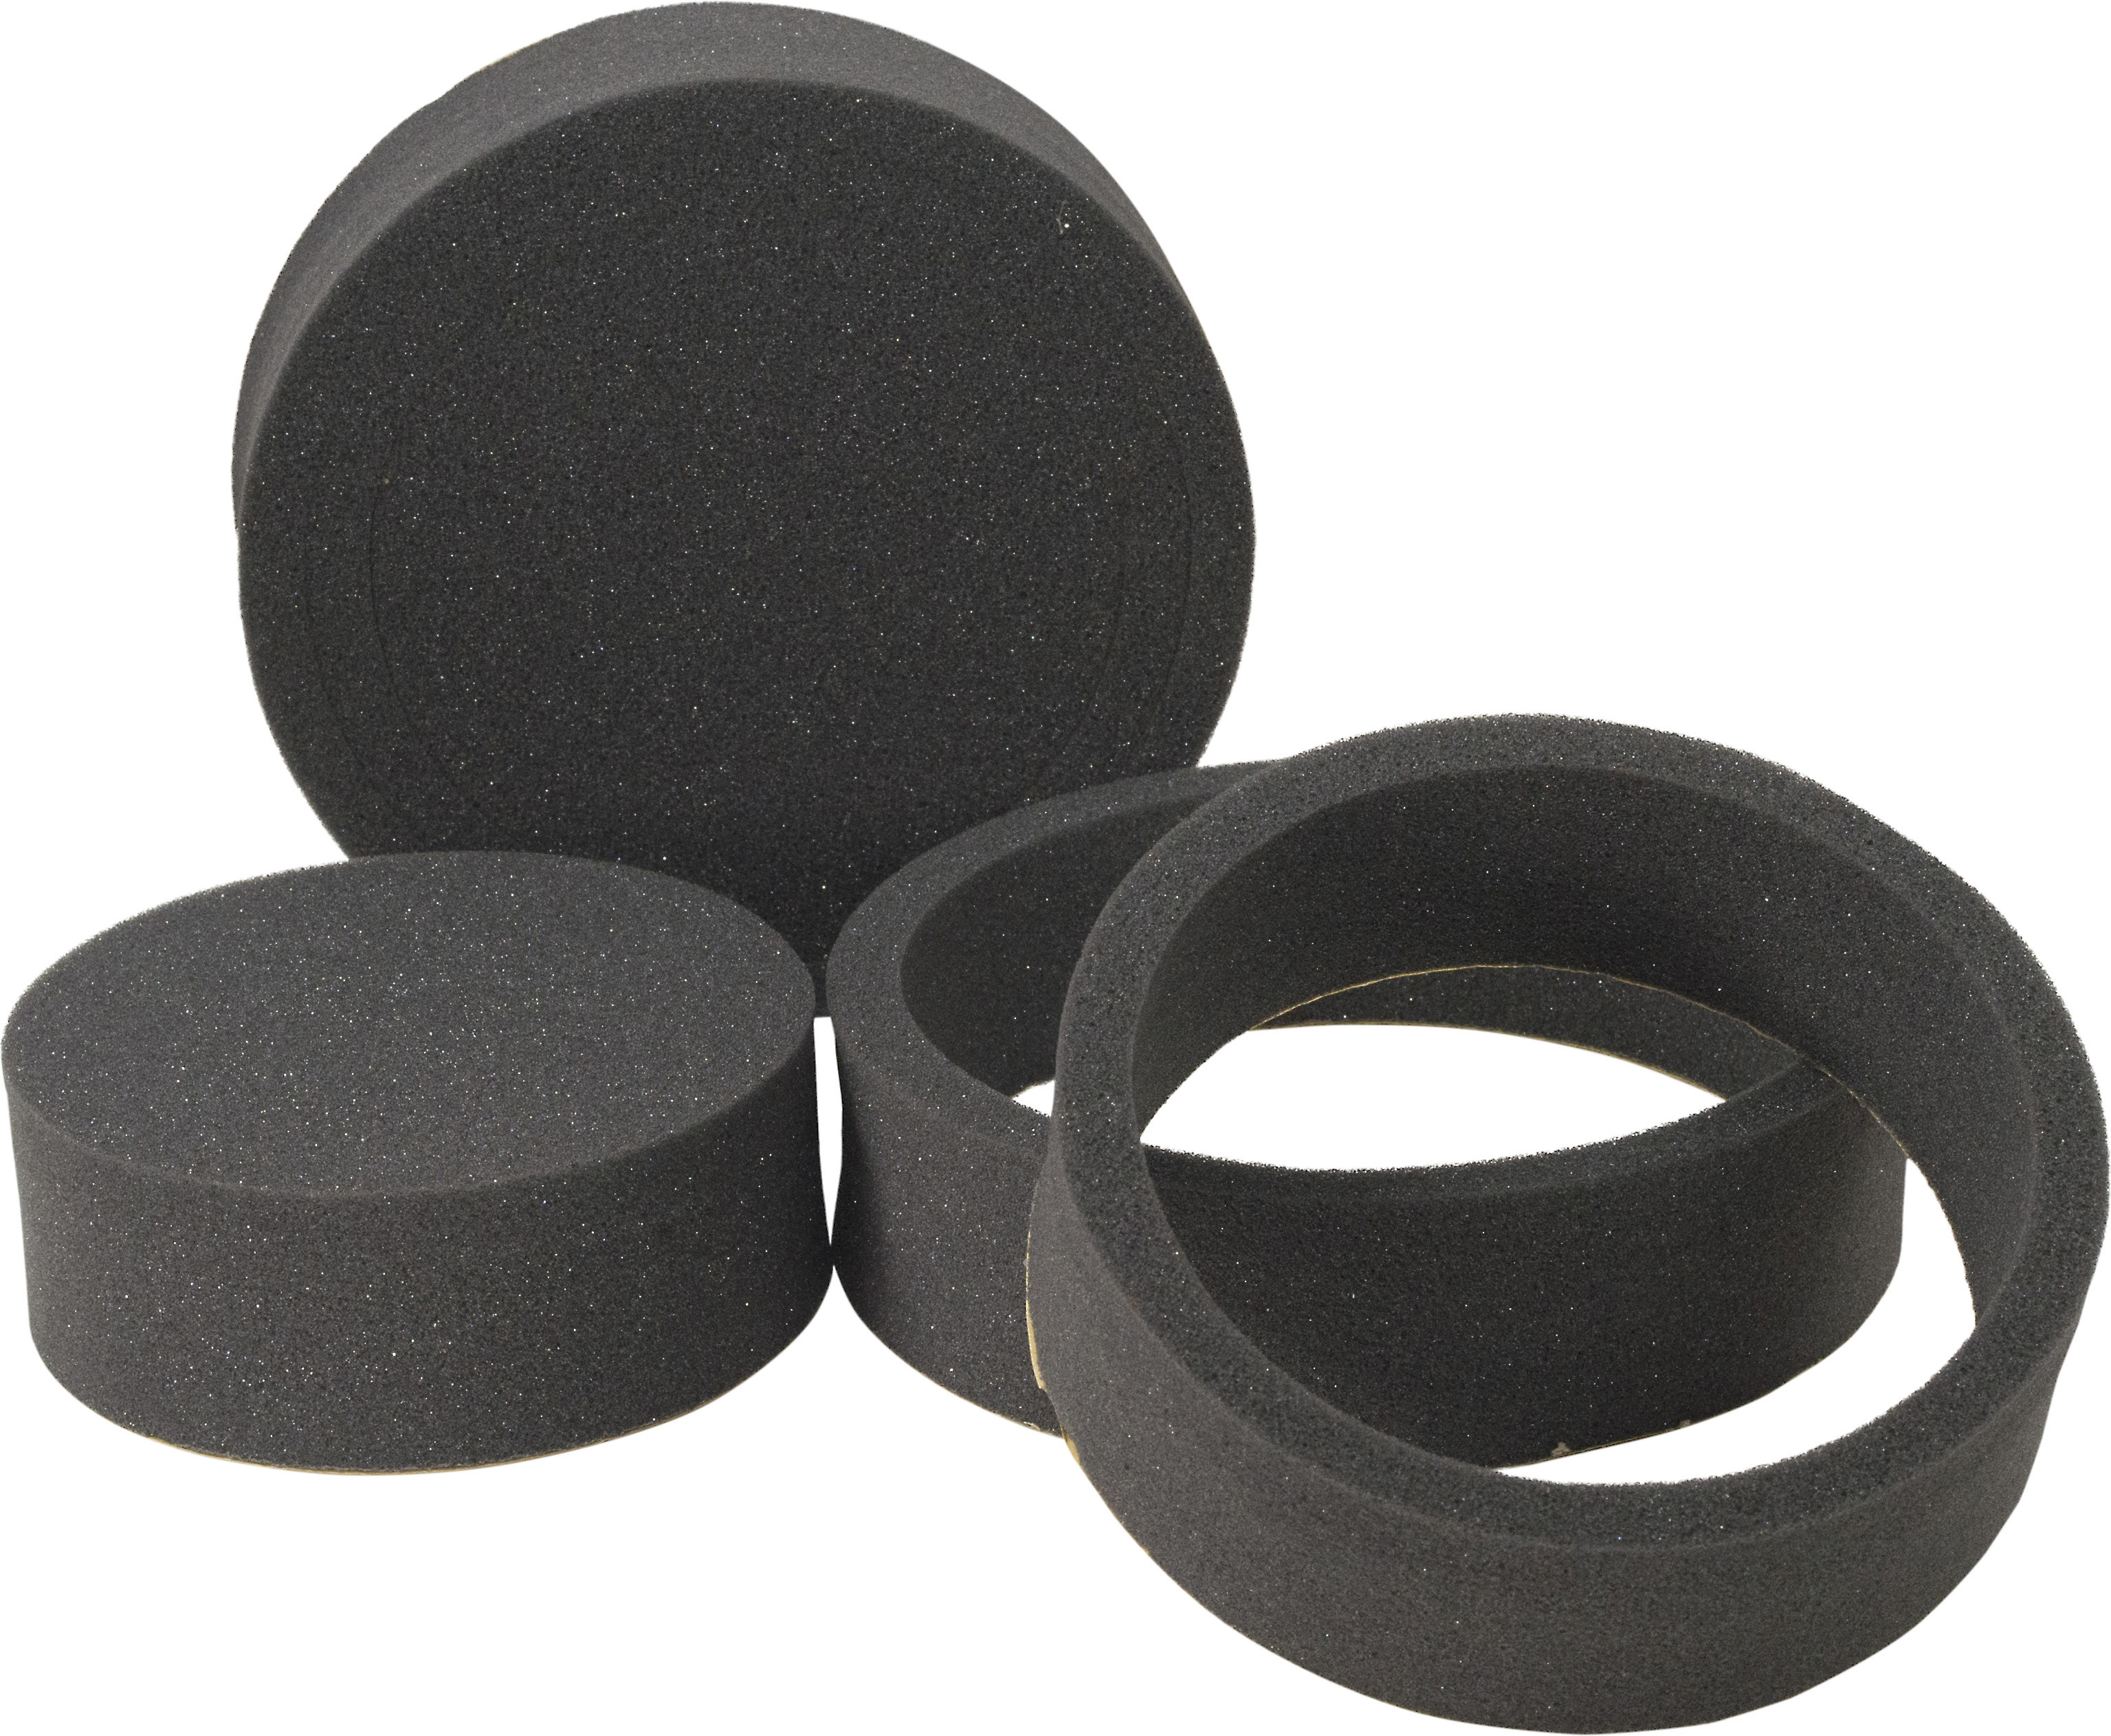 """Stinger Roadkill RKFR8 FAST Rings 8-piece foam baffle kit — enhance the  sound of your new 8"""", 8-8/8"""", or 8-8/8"""" speakers at Crutchfield"""